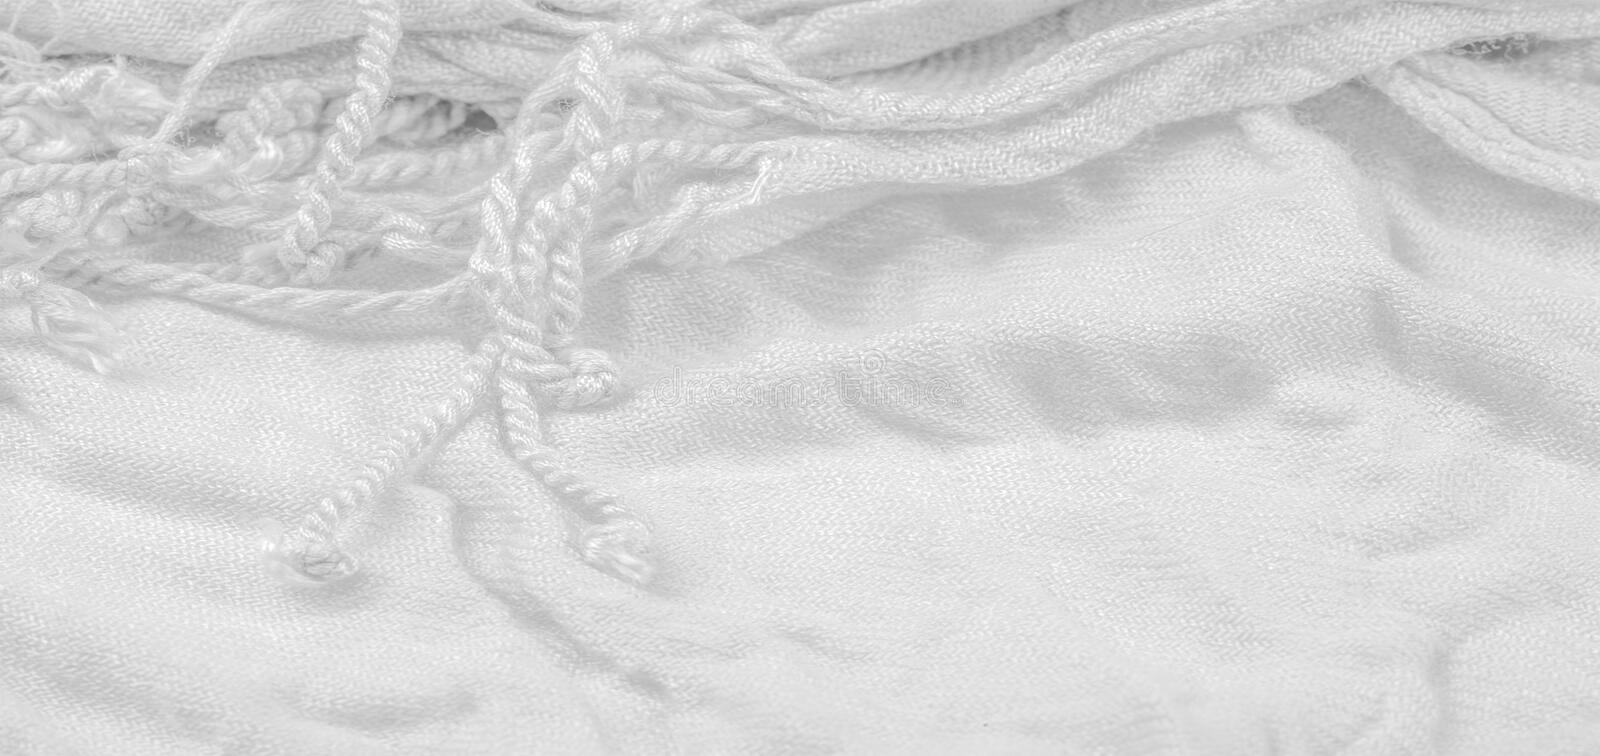 Texture, background, pattern, postcard, silk fabric, white color, isabelline, artificially wrinkled fabric, wrinkled texture,. Texture background pattern stock images